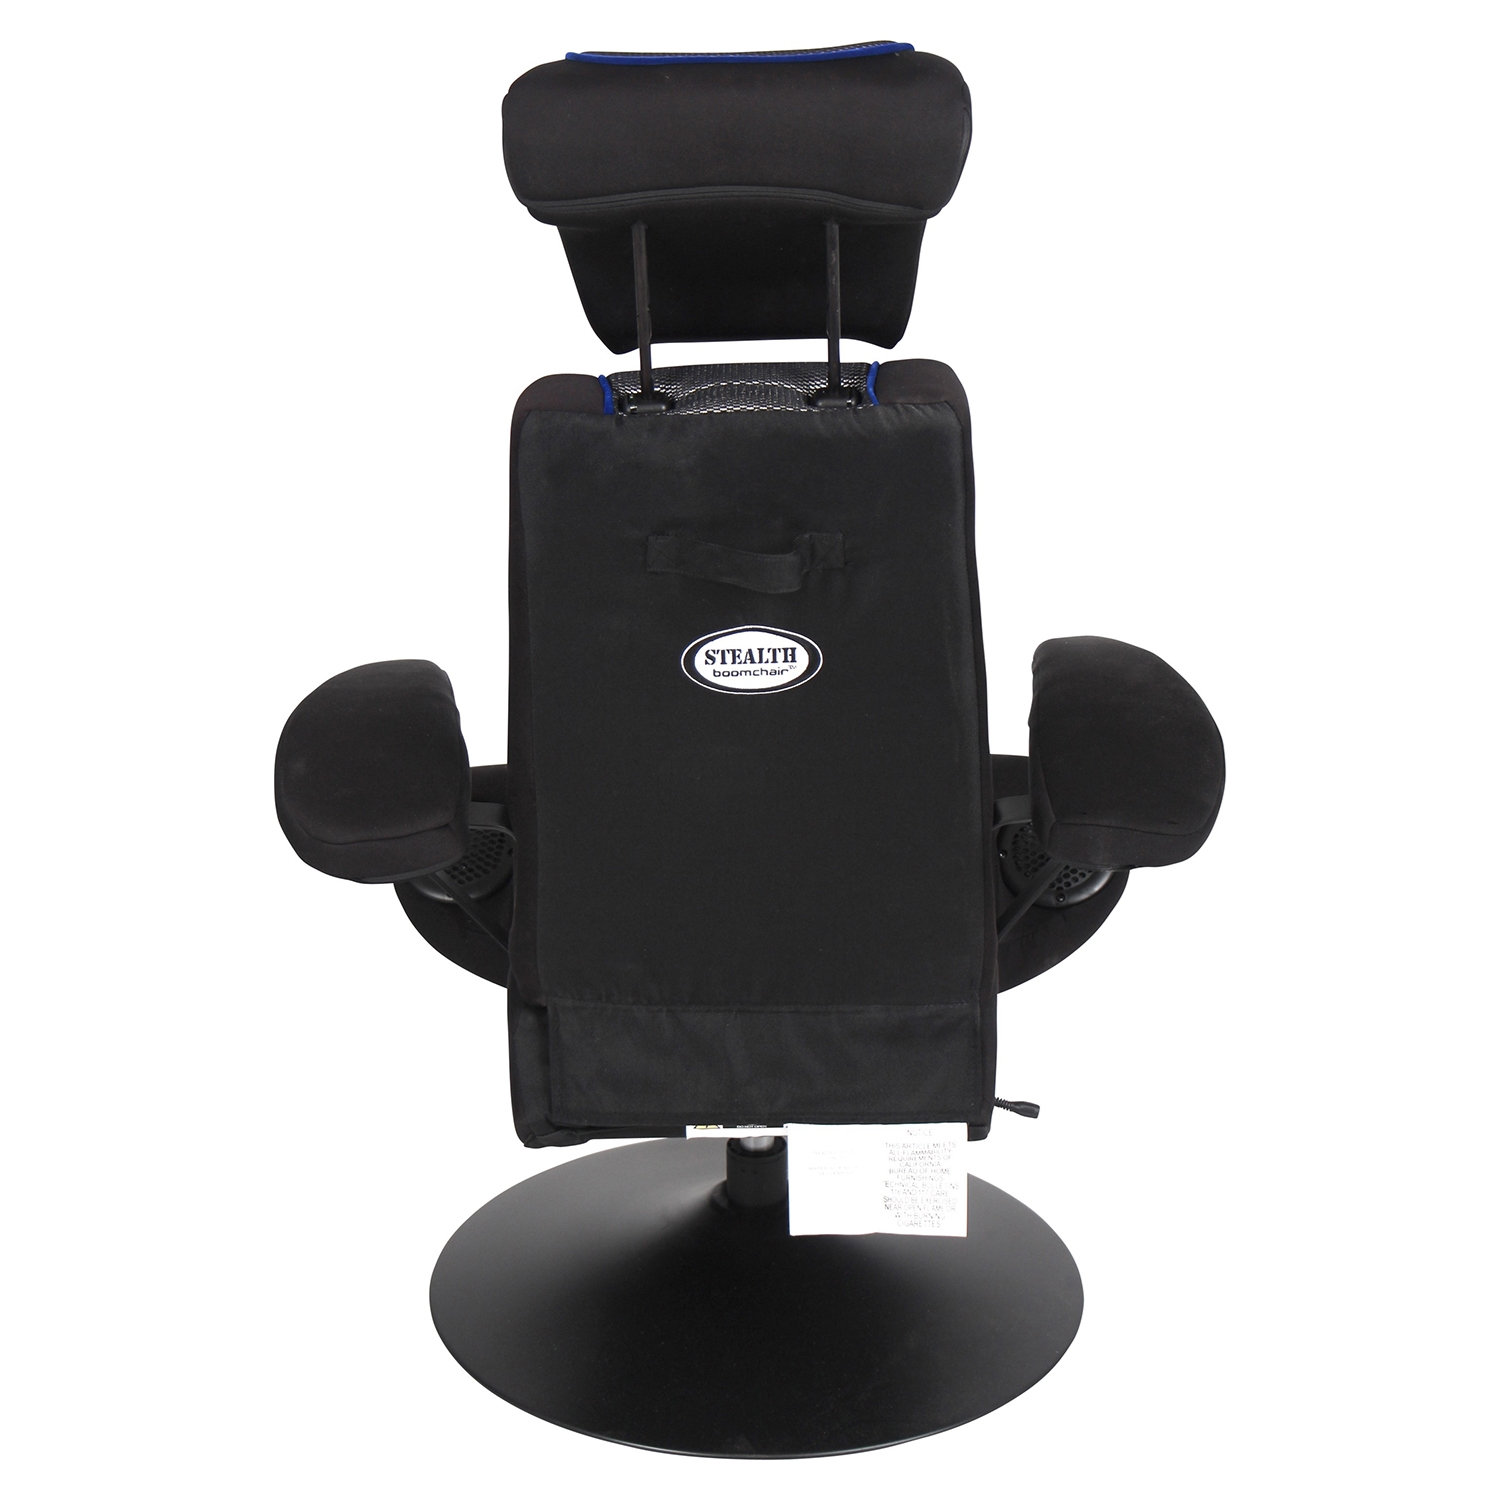 Stealth B2 Chair - Black, Gray - LMS-BM-STEALTH-B2